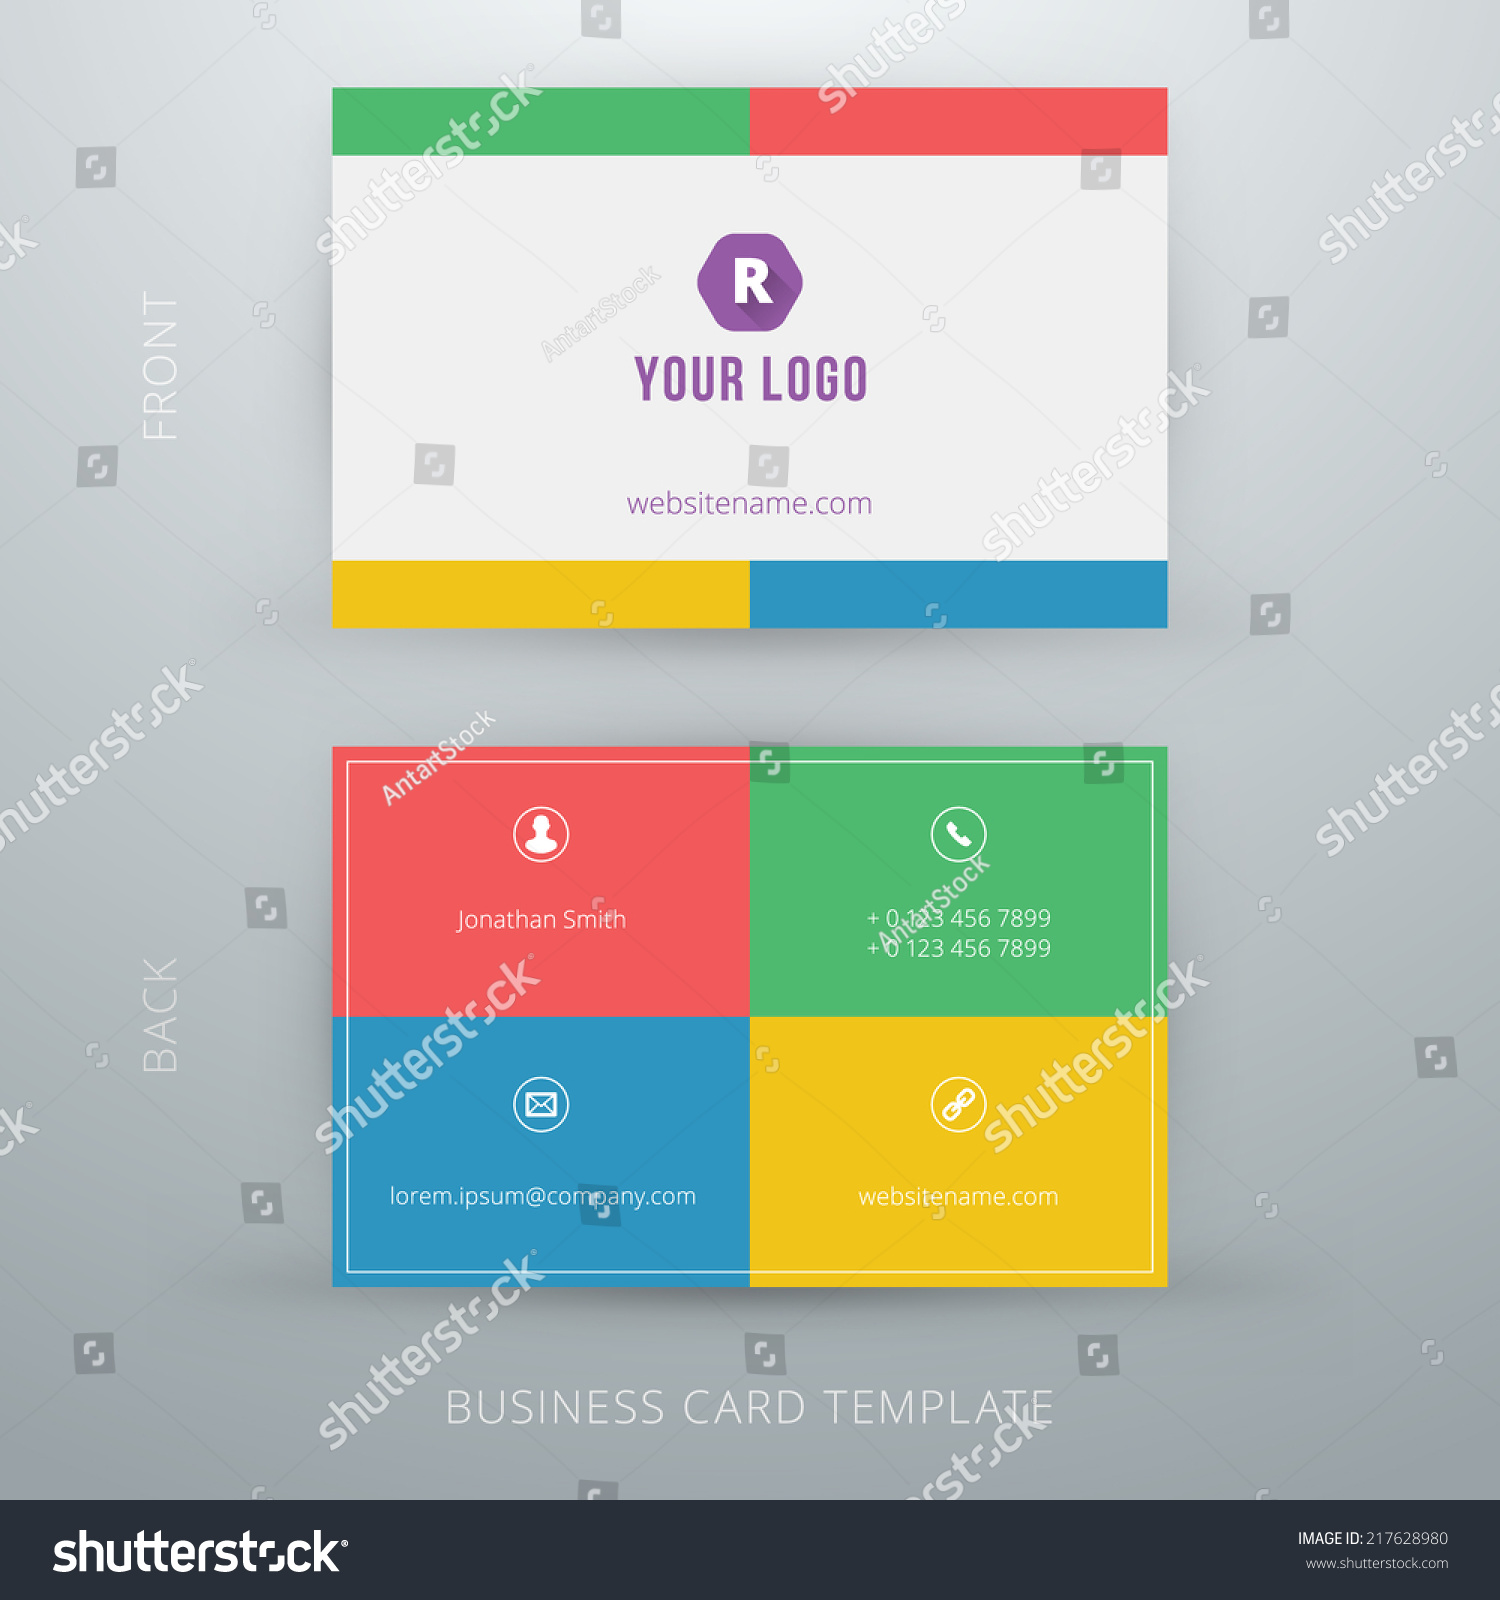 simple business card template - Pertamini.co